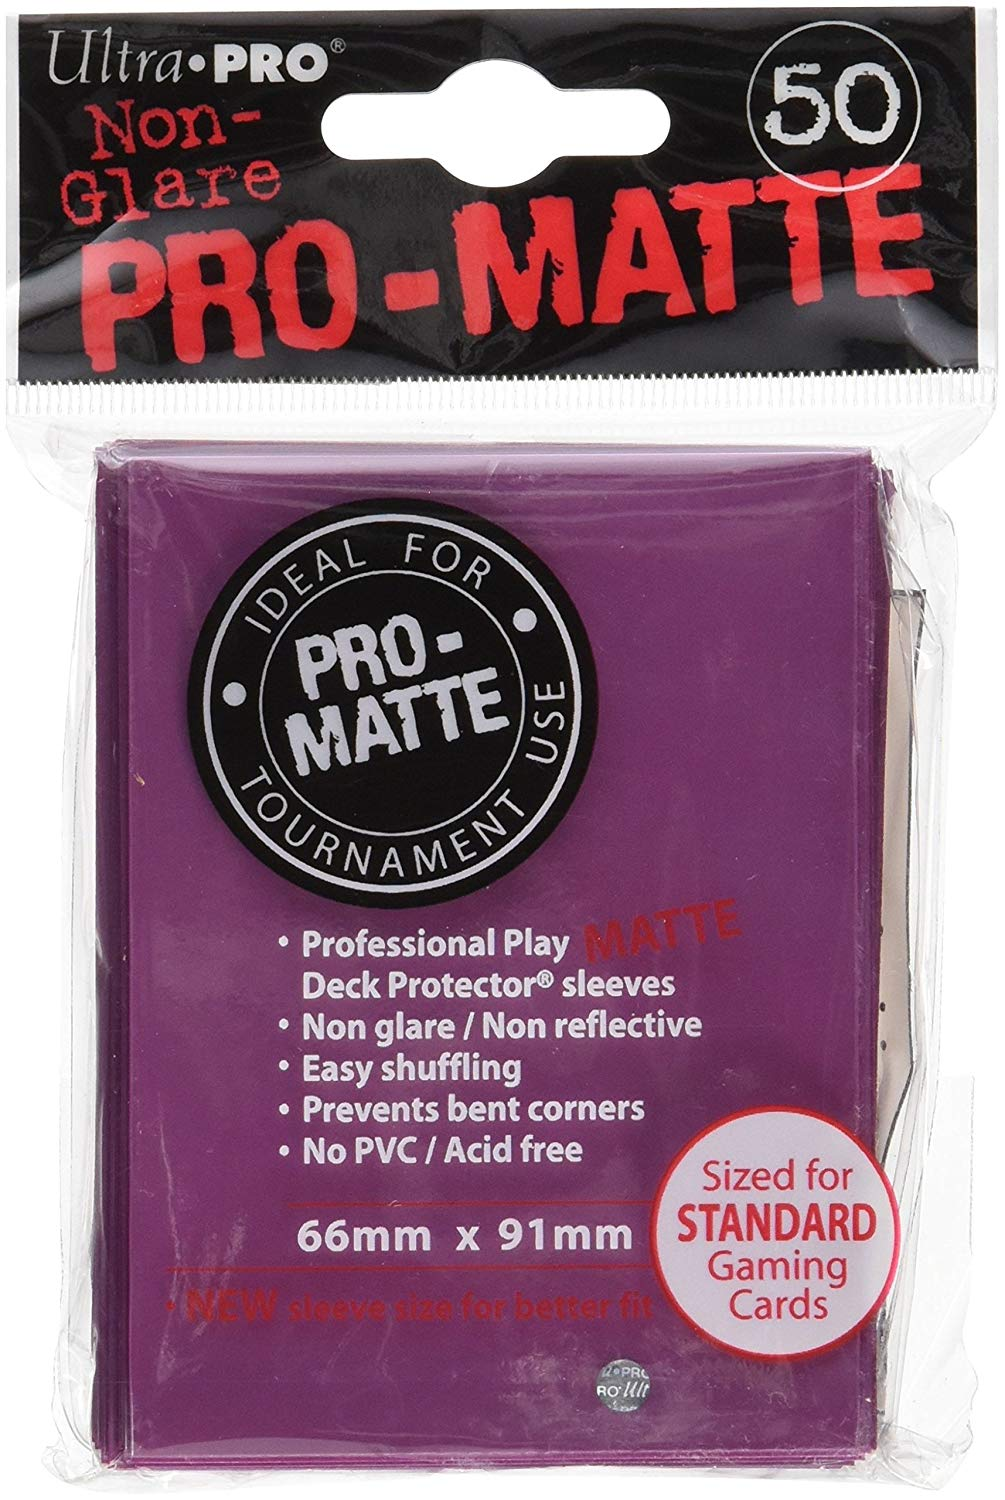 Ultra Pro Matte Deck Protector Sleeeves 50 Count Blackberry